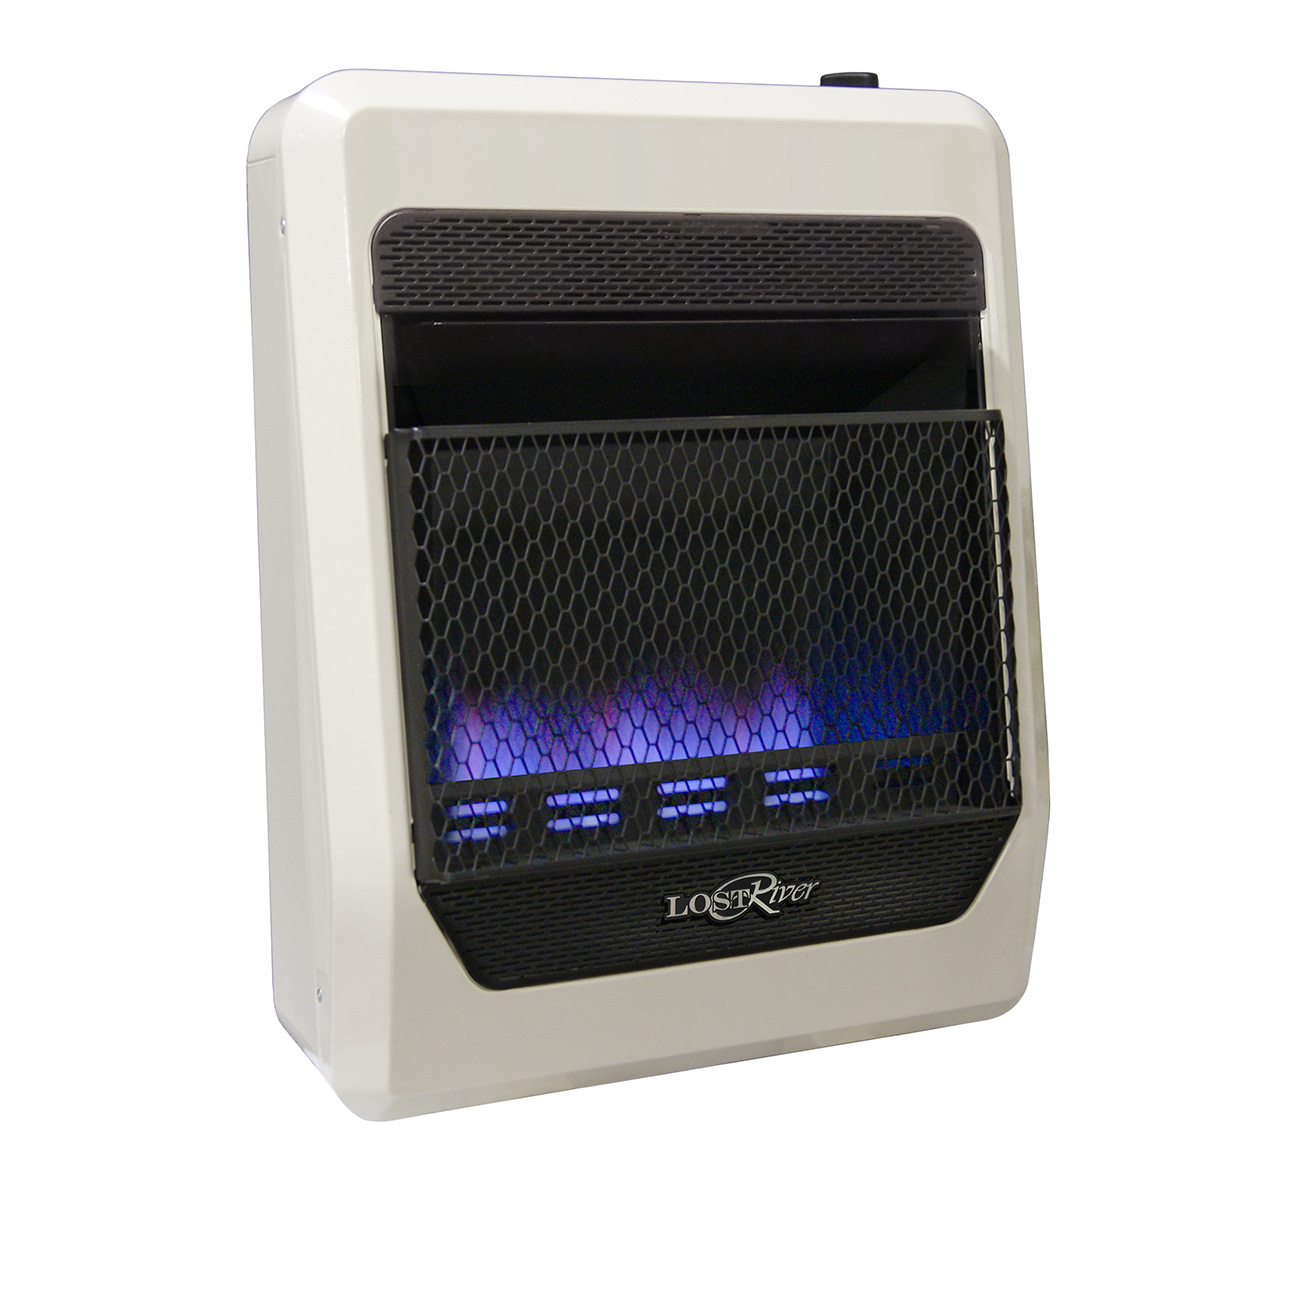 Lost River Blue Flame Wall Heater Model PCIT20BF